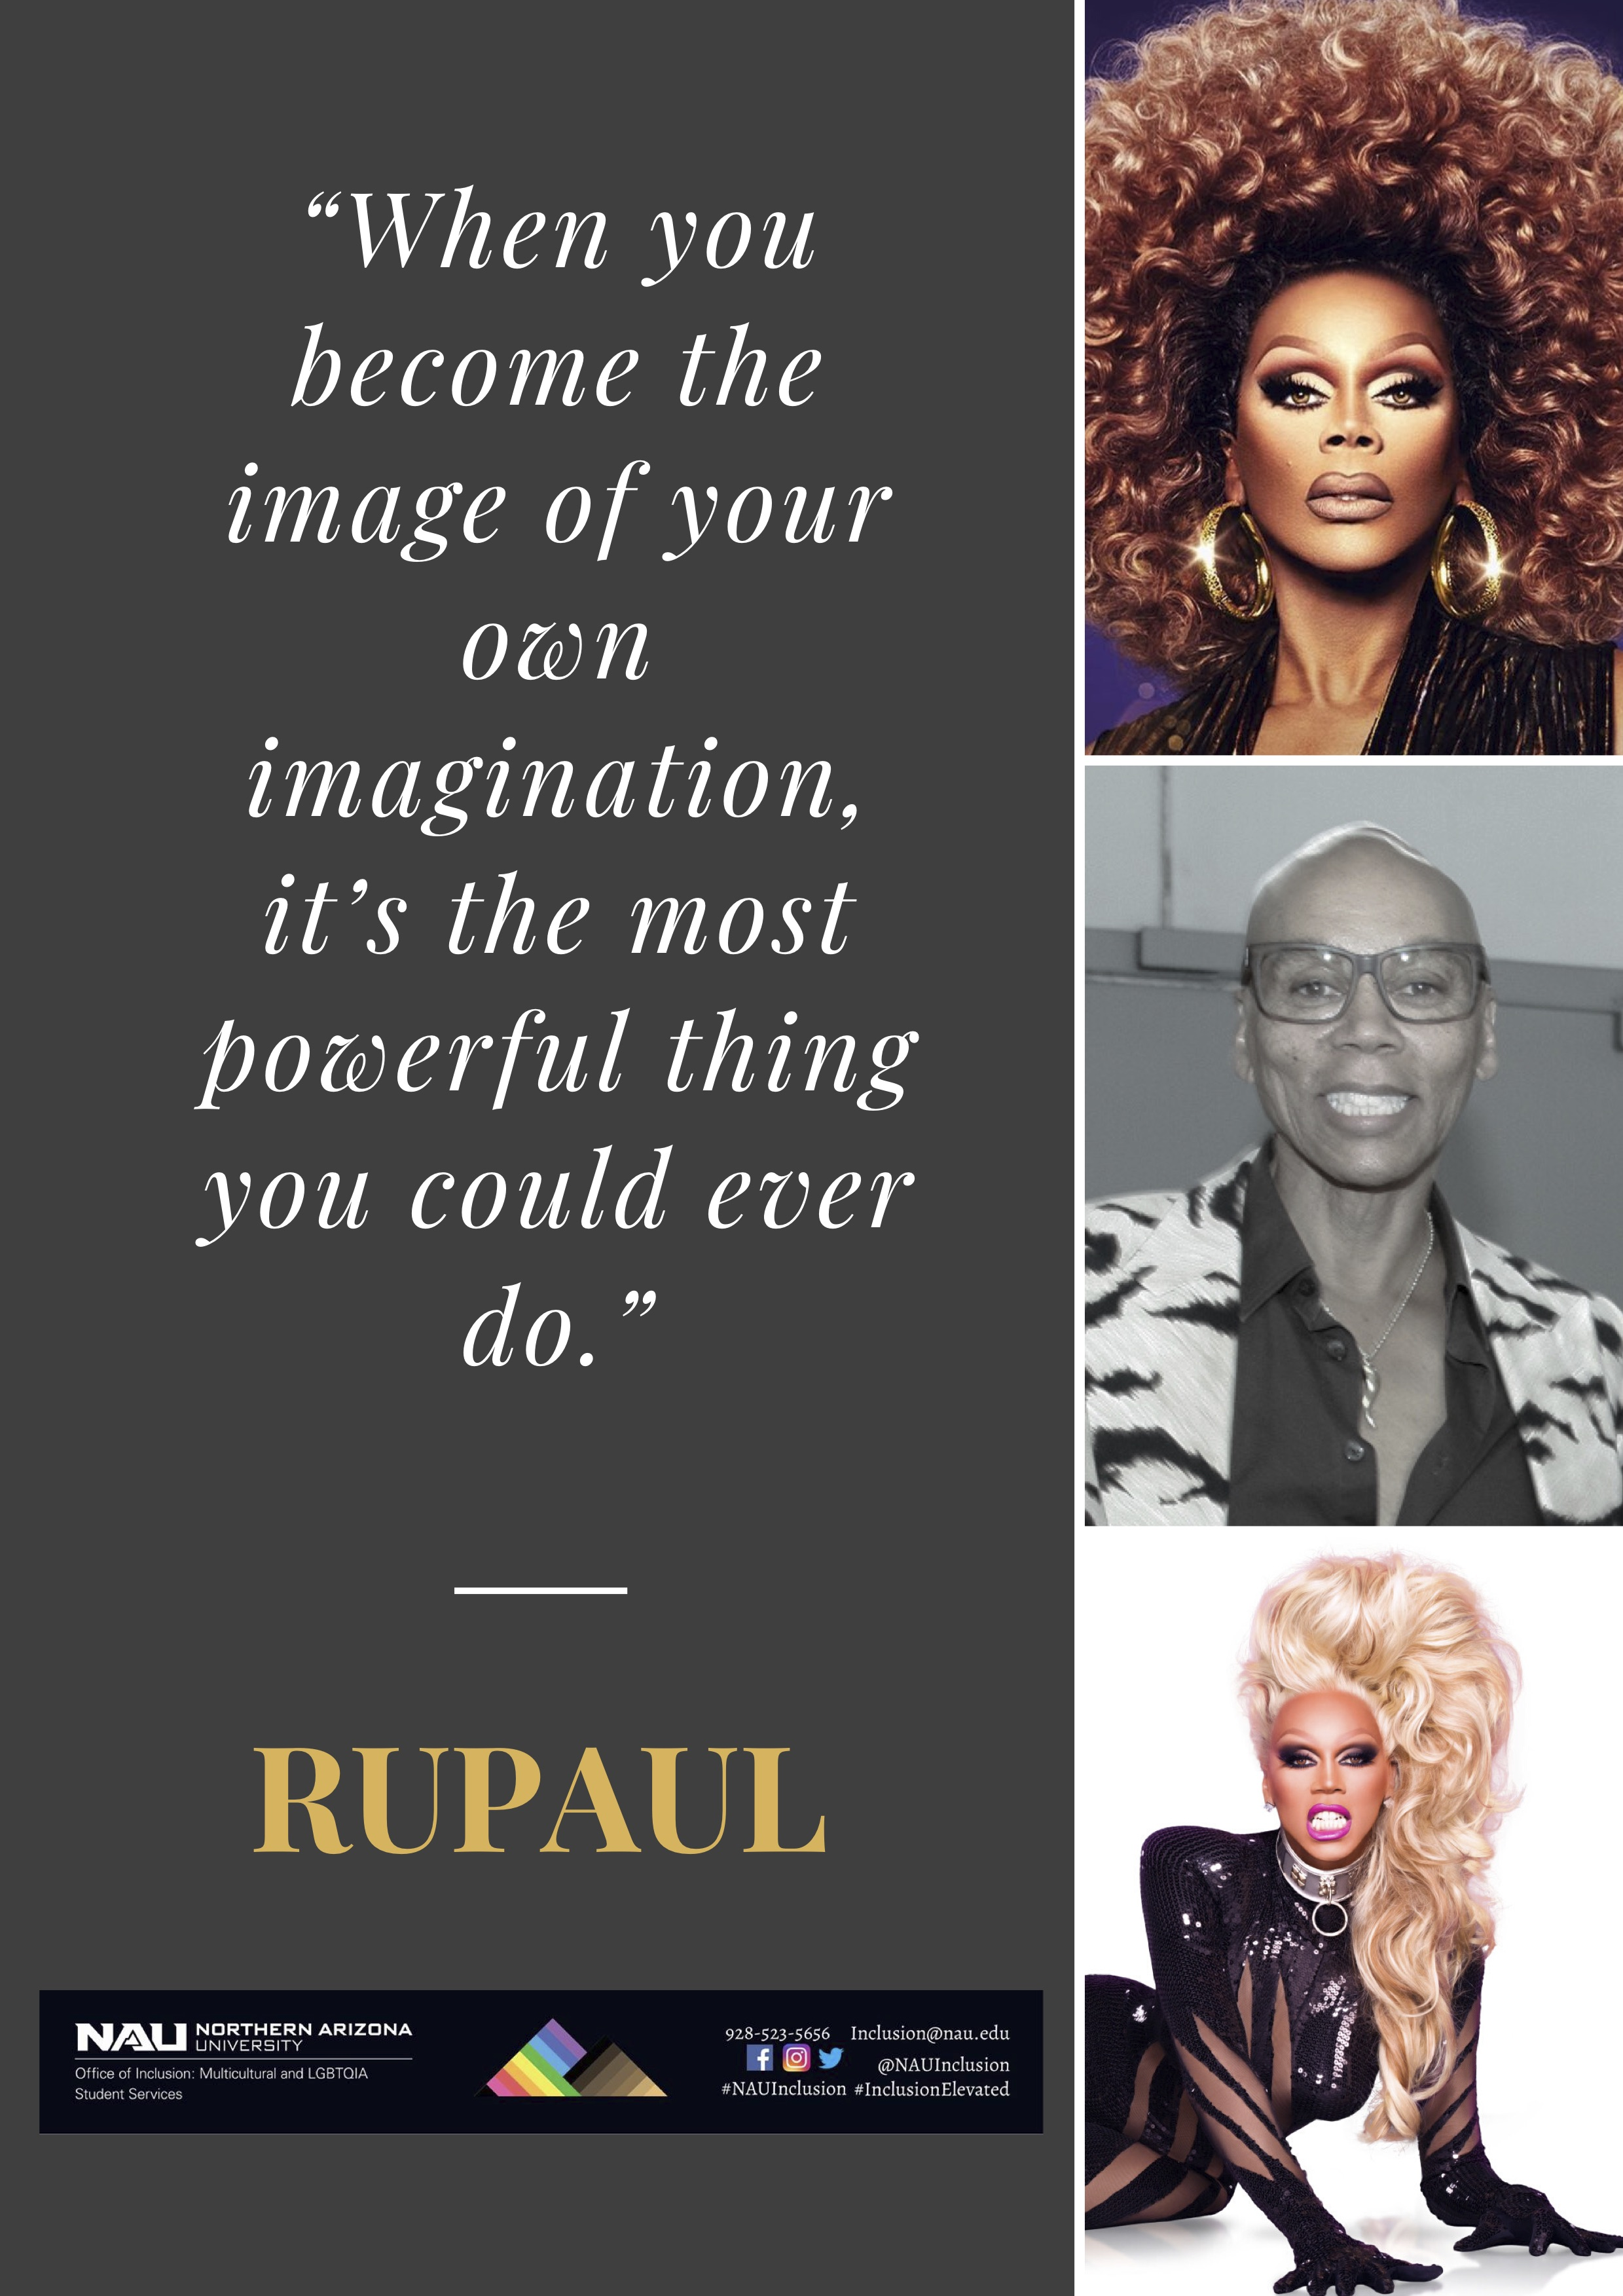 Rupaul Image of Your Own